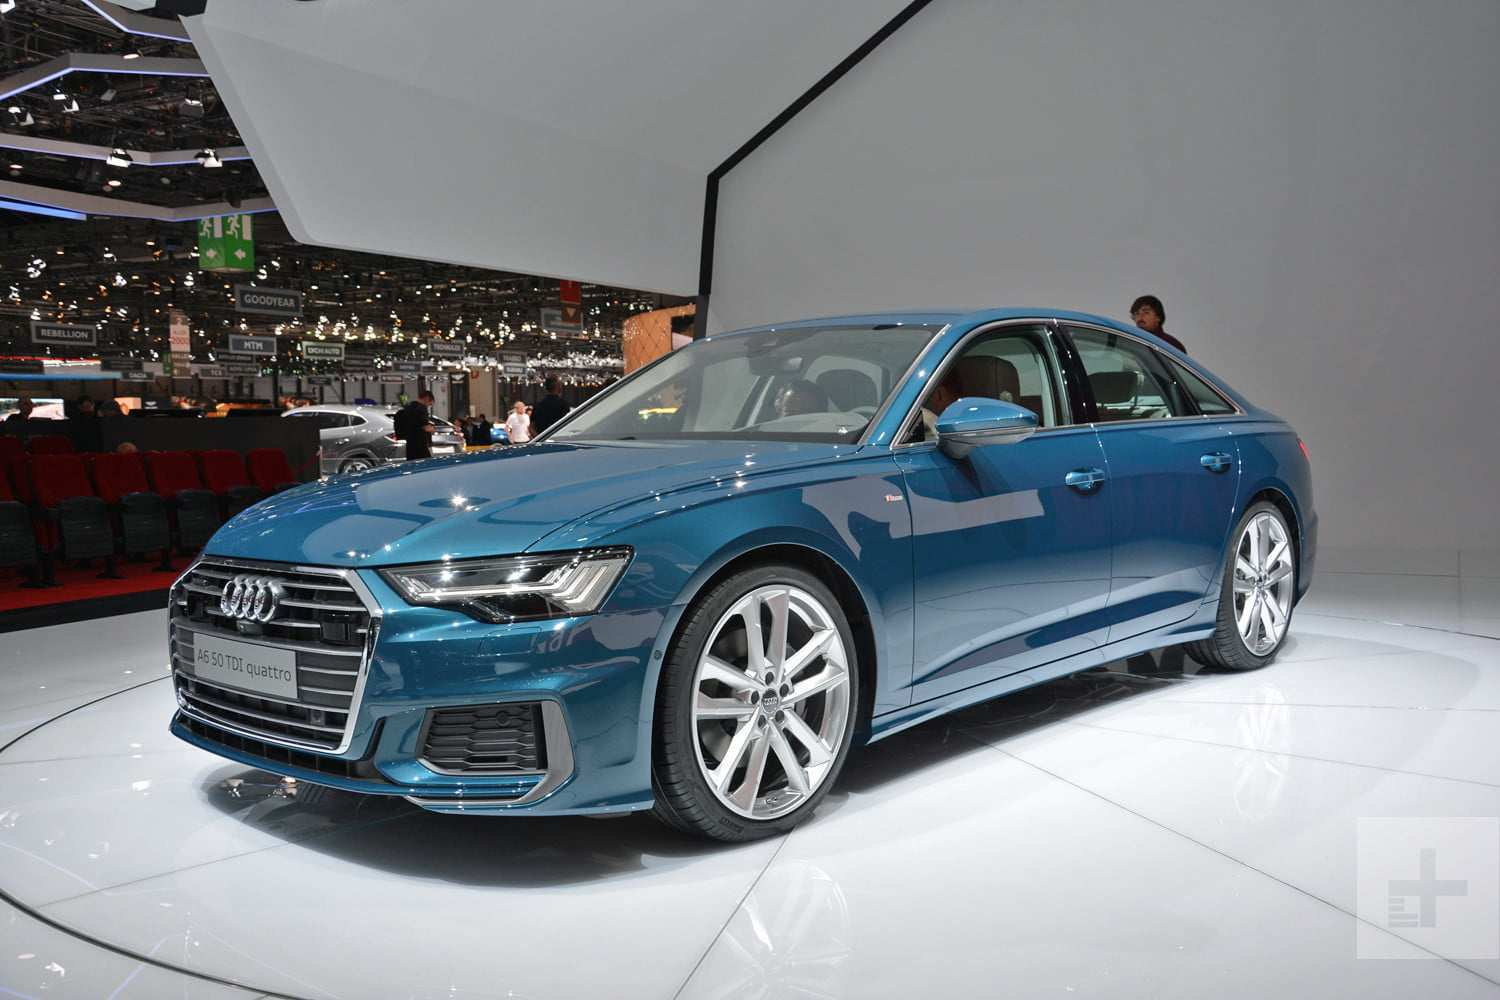 96 Best Review 2019 Audi A6 Specs Rumors for 2019 Audi A6 Specs